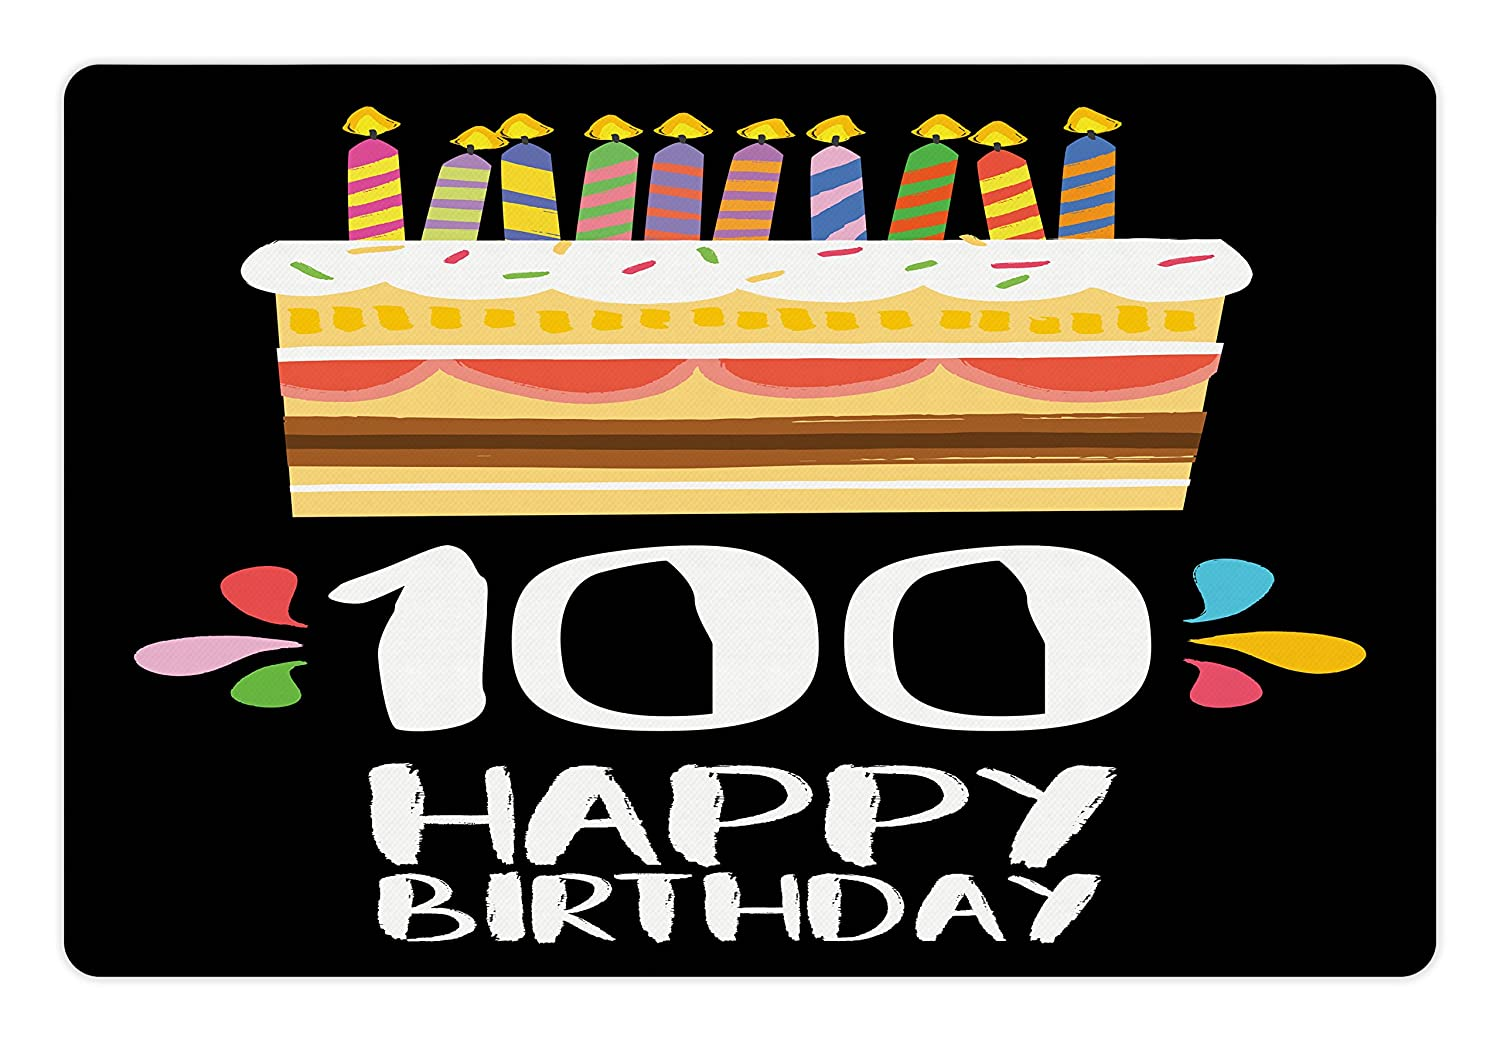 Ambesonne 100th Birthday Pet Mat For Food And Water Old Legacy 100 Party Cake Candles On Black Major Milestone Backdrop Rectangle Non Slip Rubber